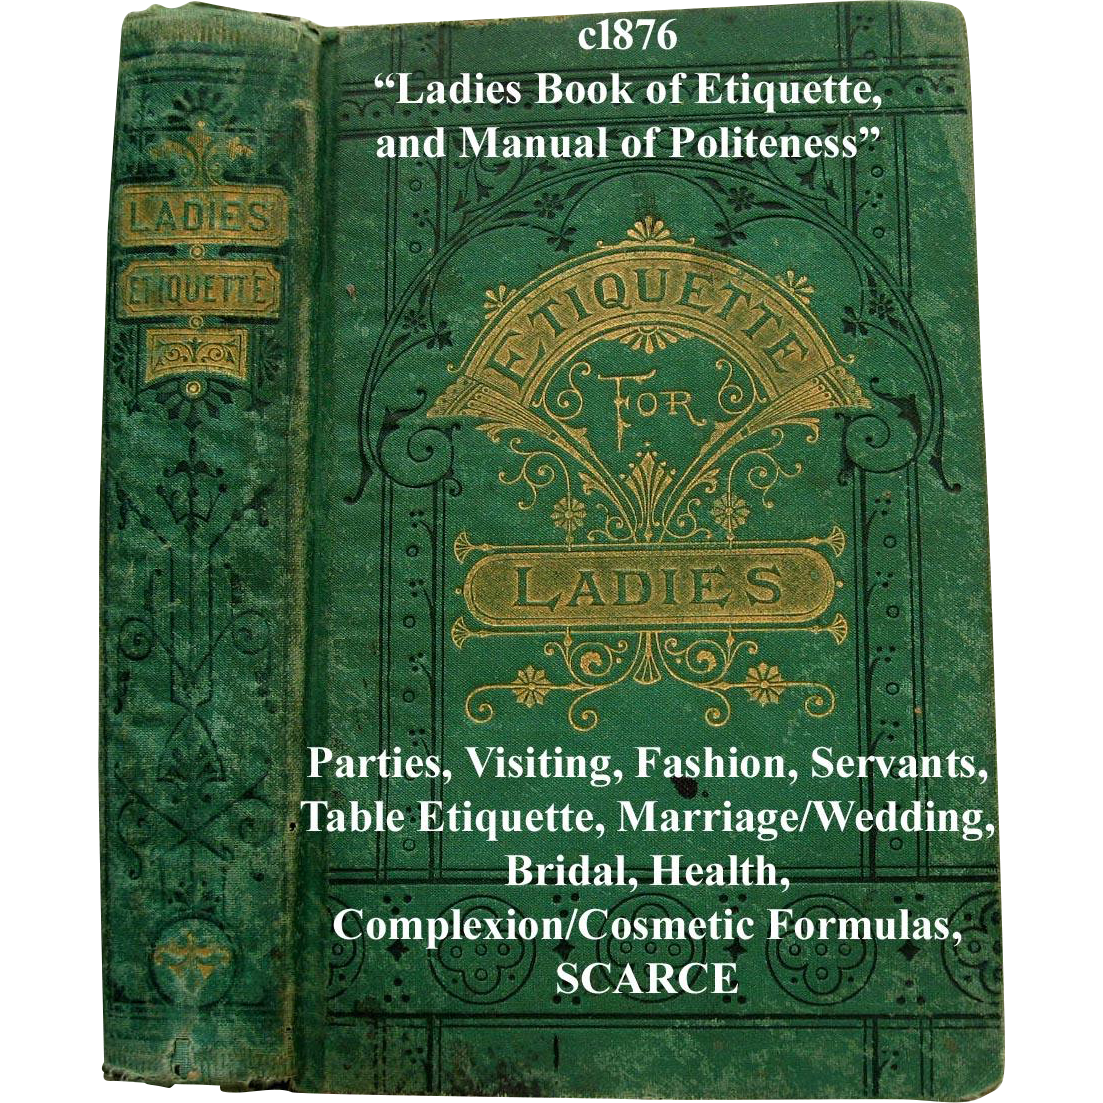 Wedding Gift Receipt Etiquette : Antique The Ladies Book of Etiquette and Manual of Politeness Hartley ...